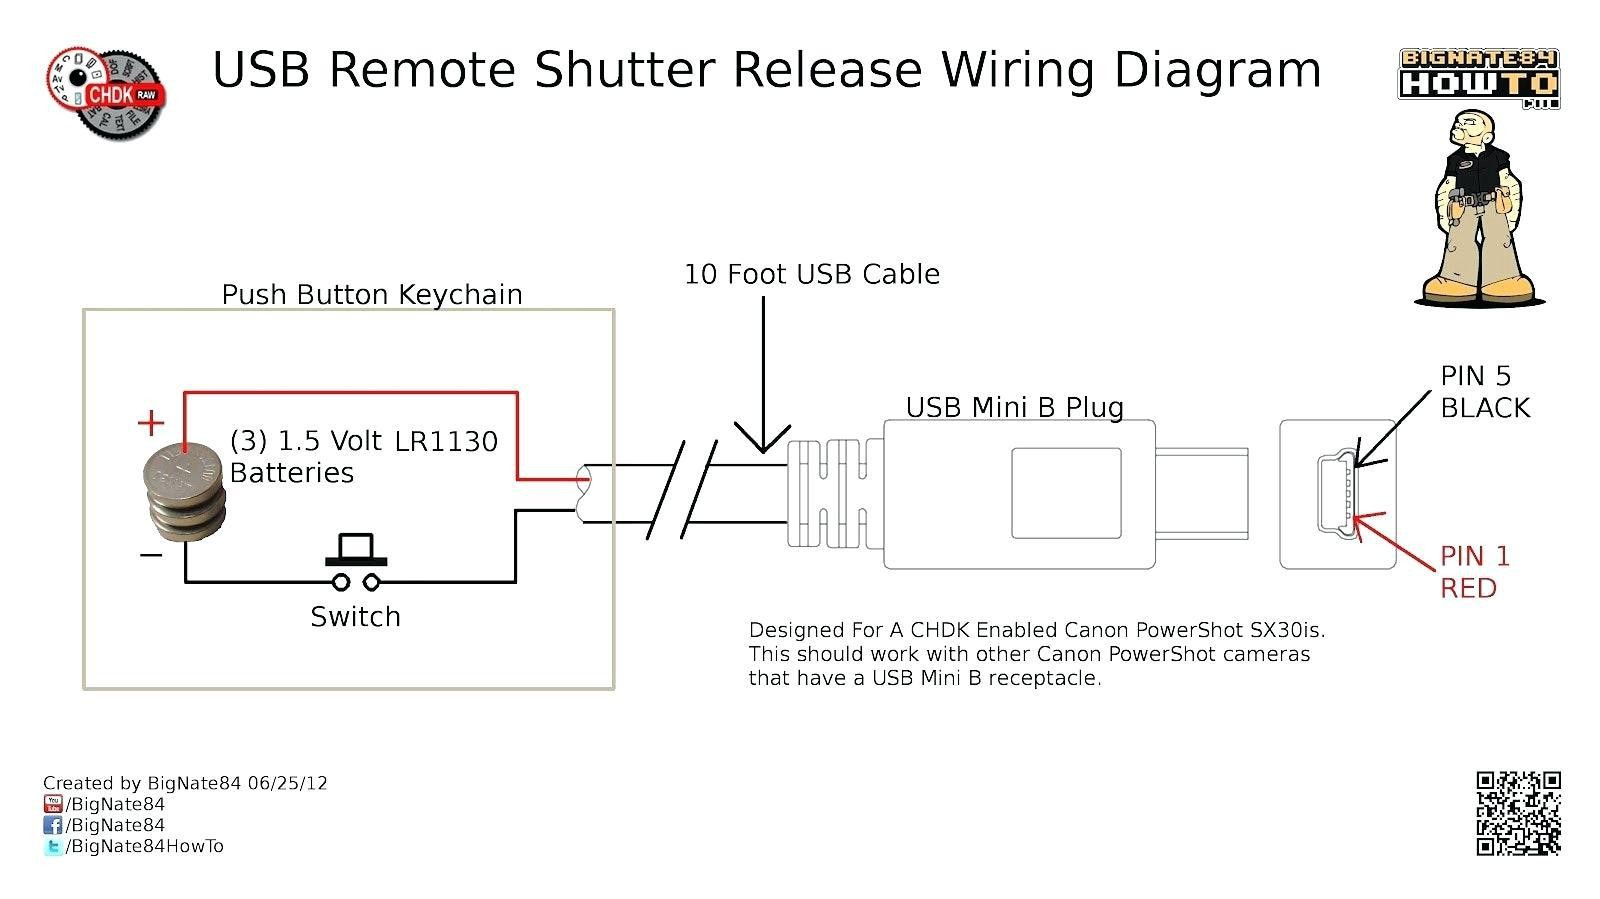 Micro Usb Cable Wiring Diagram To Rs232 | Wiring Library - Wiring Diagram Usb A To Usb Micro B